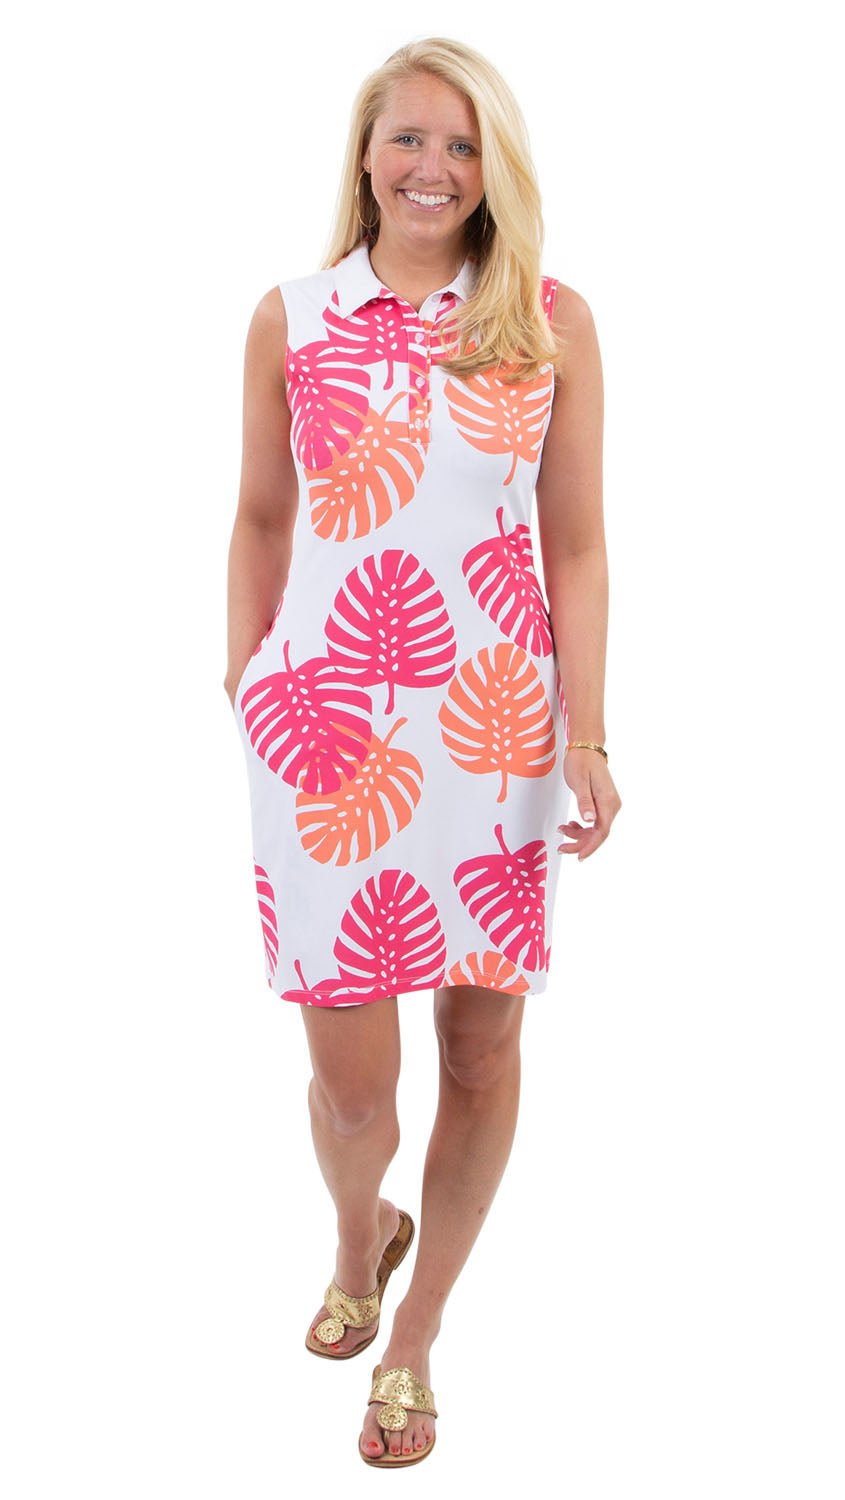 Port Dress Sleeveless - Hot Pink/Salmon Dancing Palms-  SAMPLE FINAL SALE